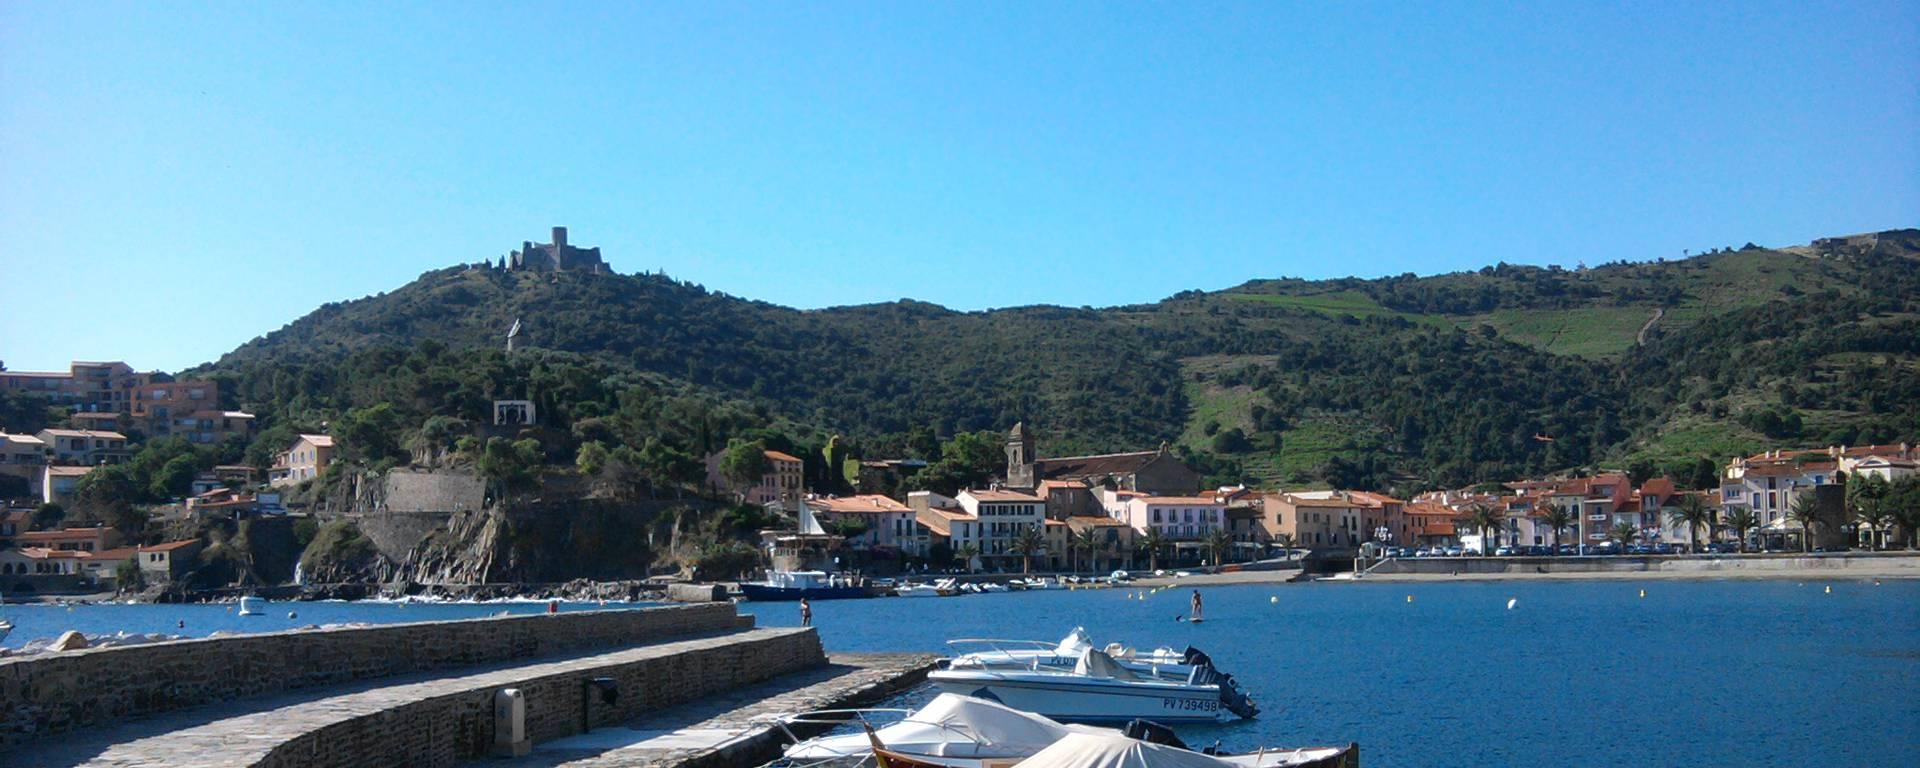 The port of Colioure